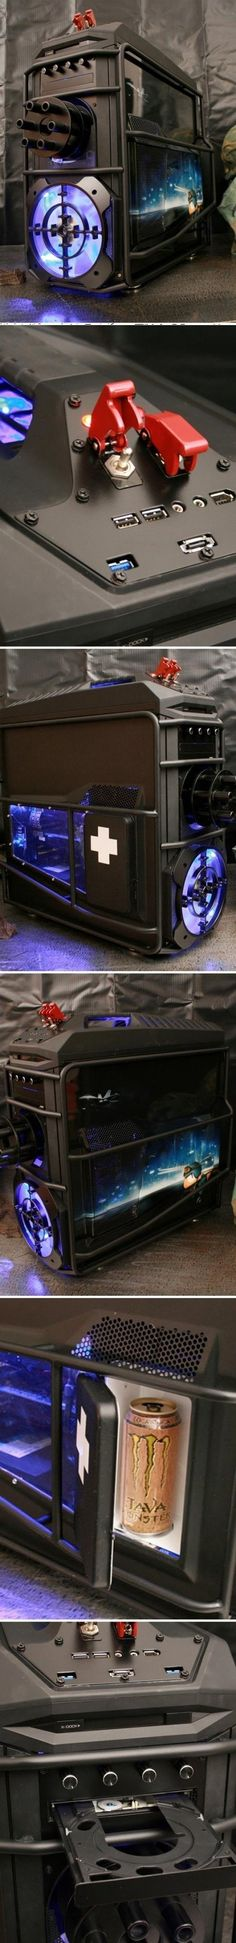 Epic Gaming Computer with a spot for your Java Monster, unleash the beast indeed